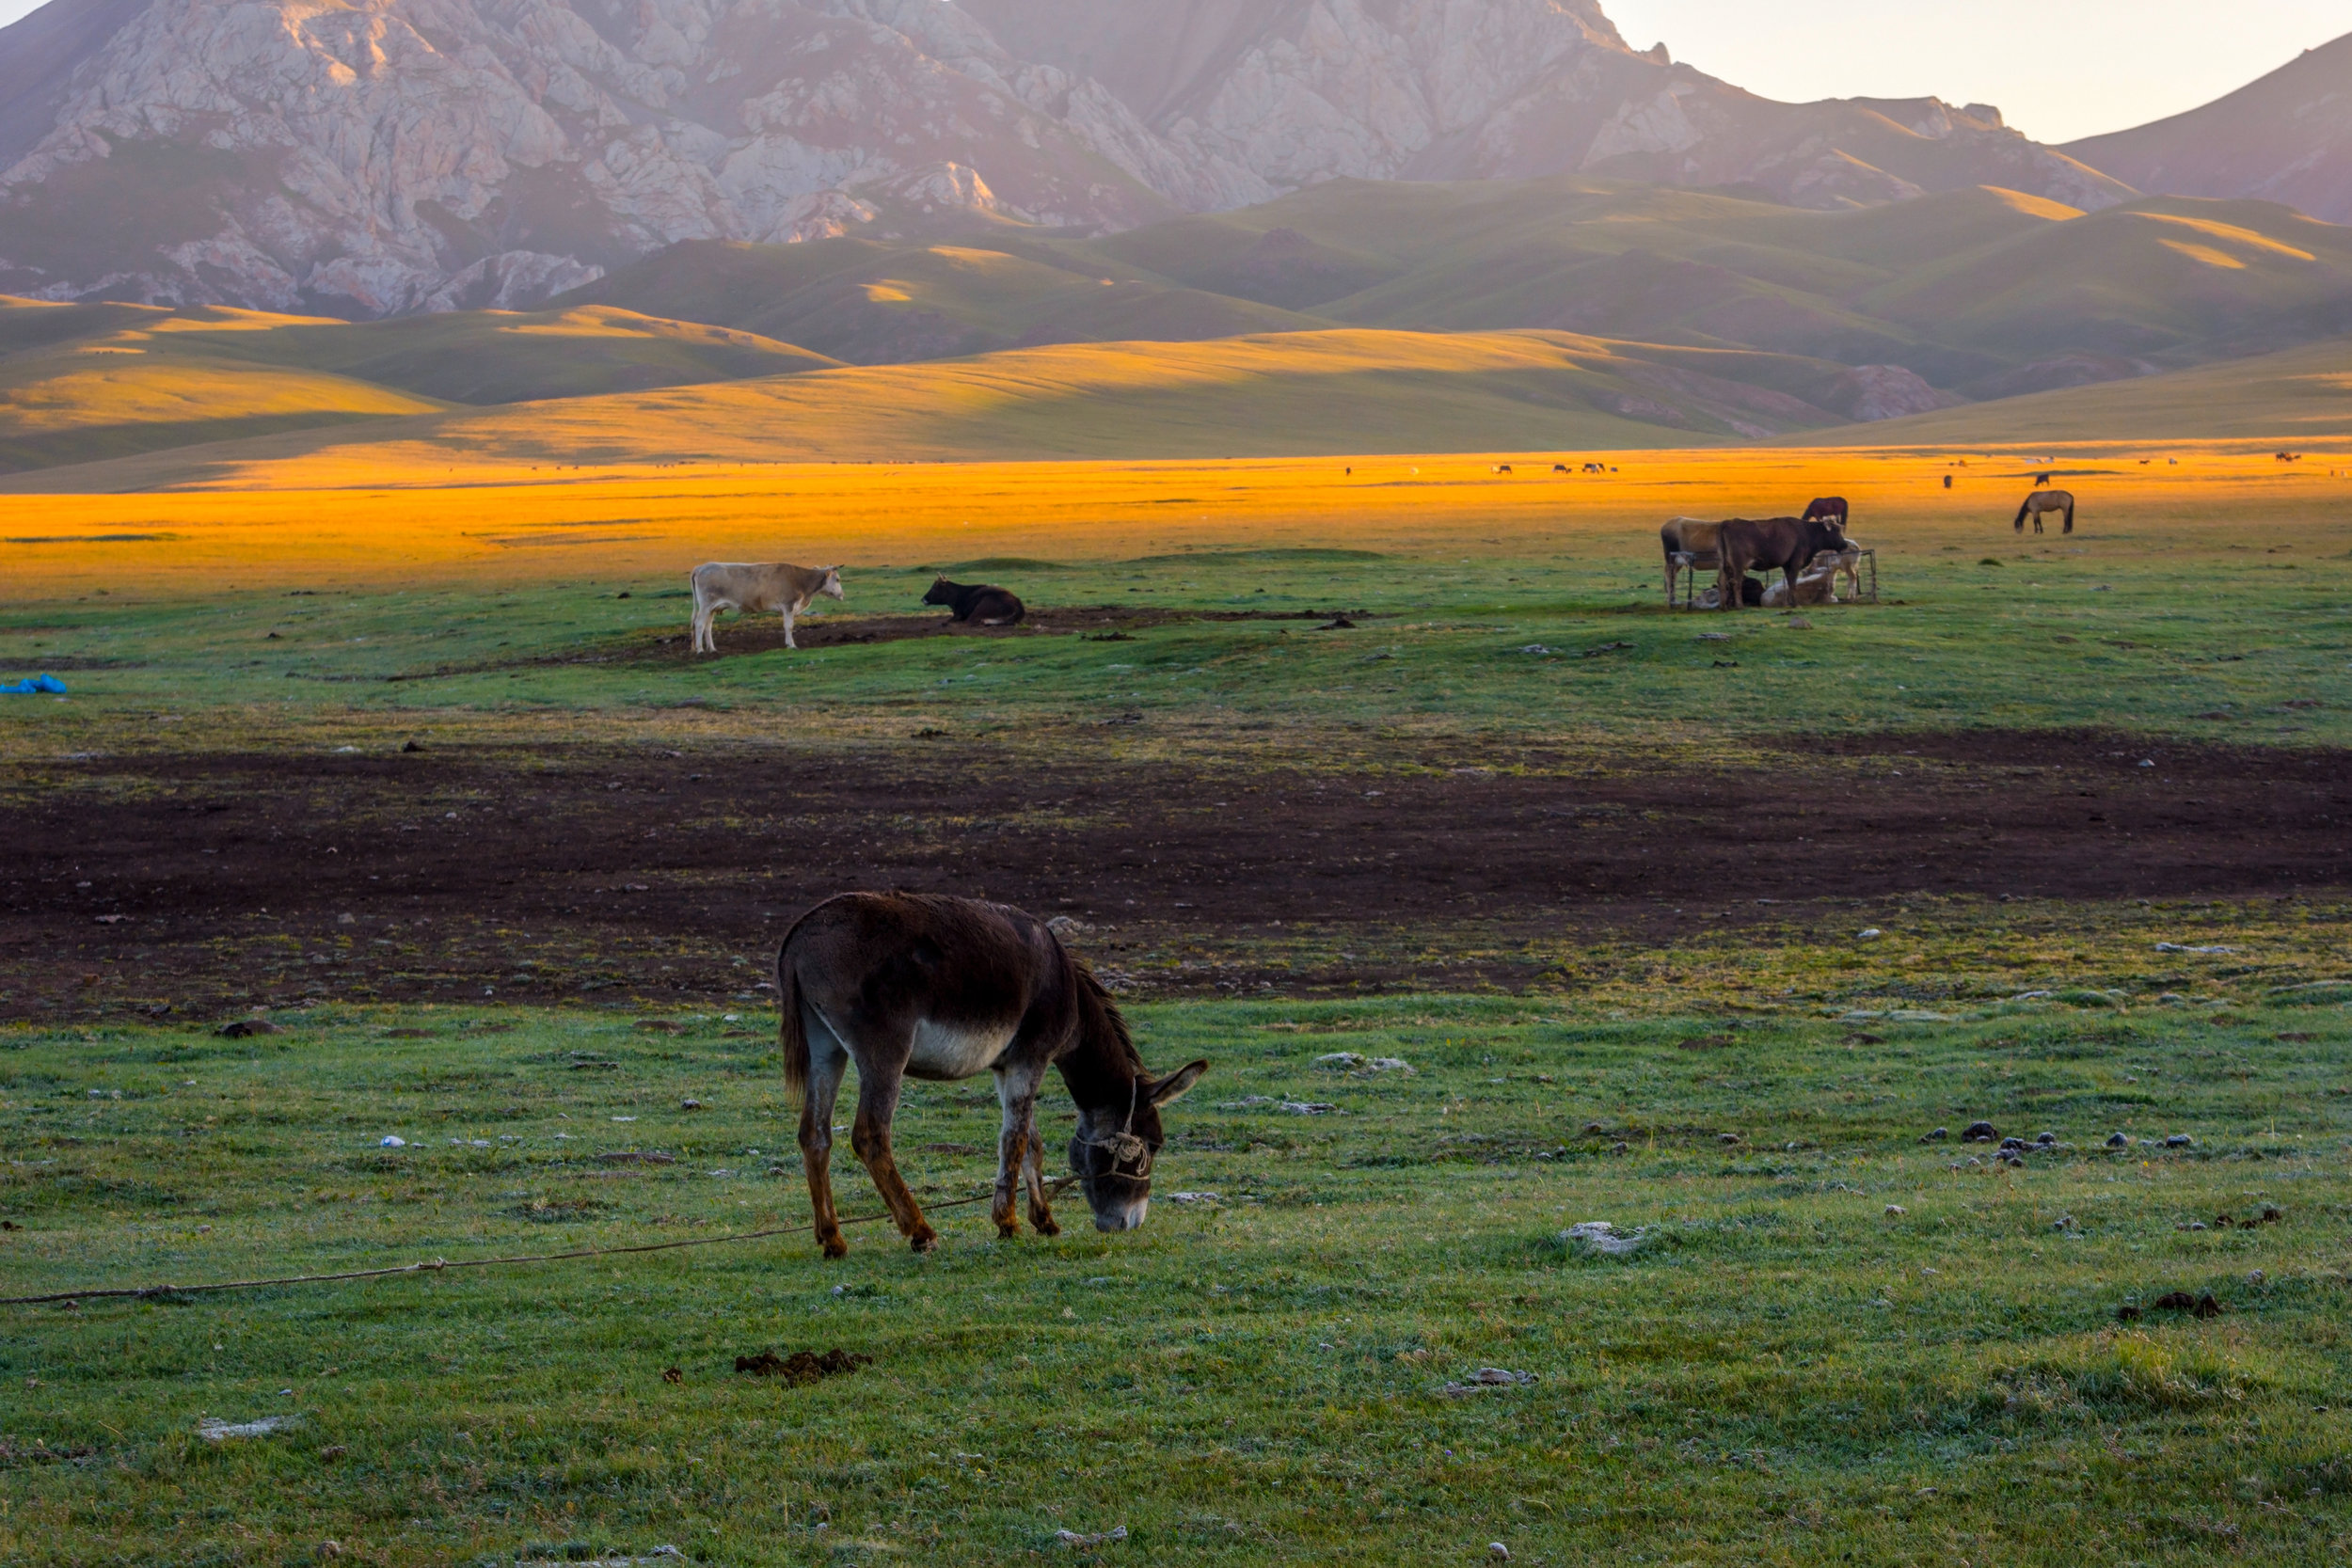 kysrgyzstan_bigstock-Mountains-And-Donkey-By-Song-K-216080899.jpg